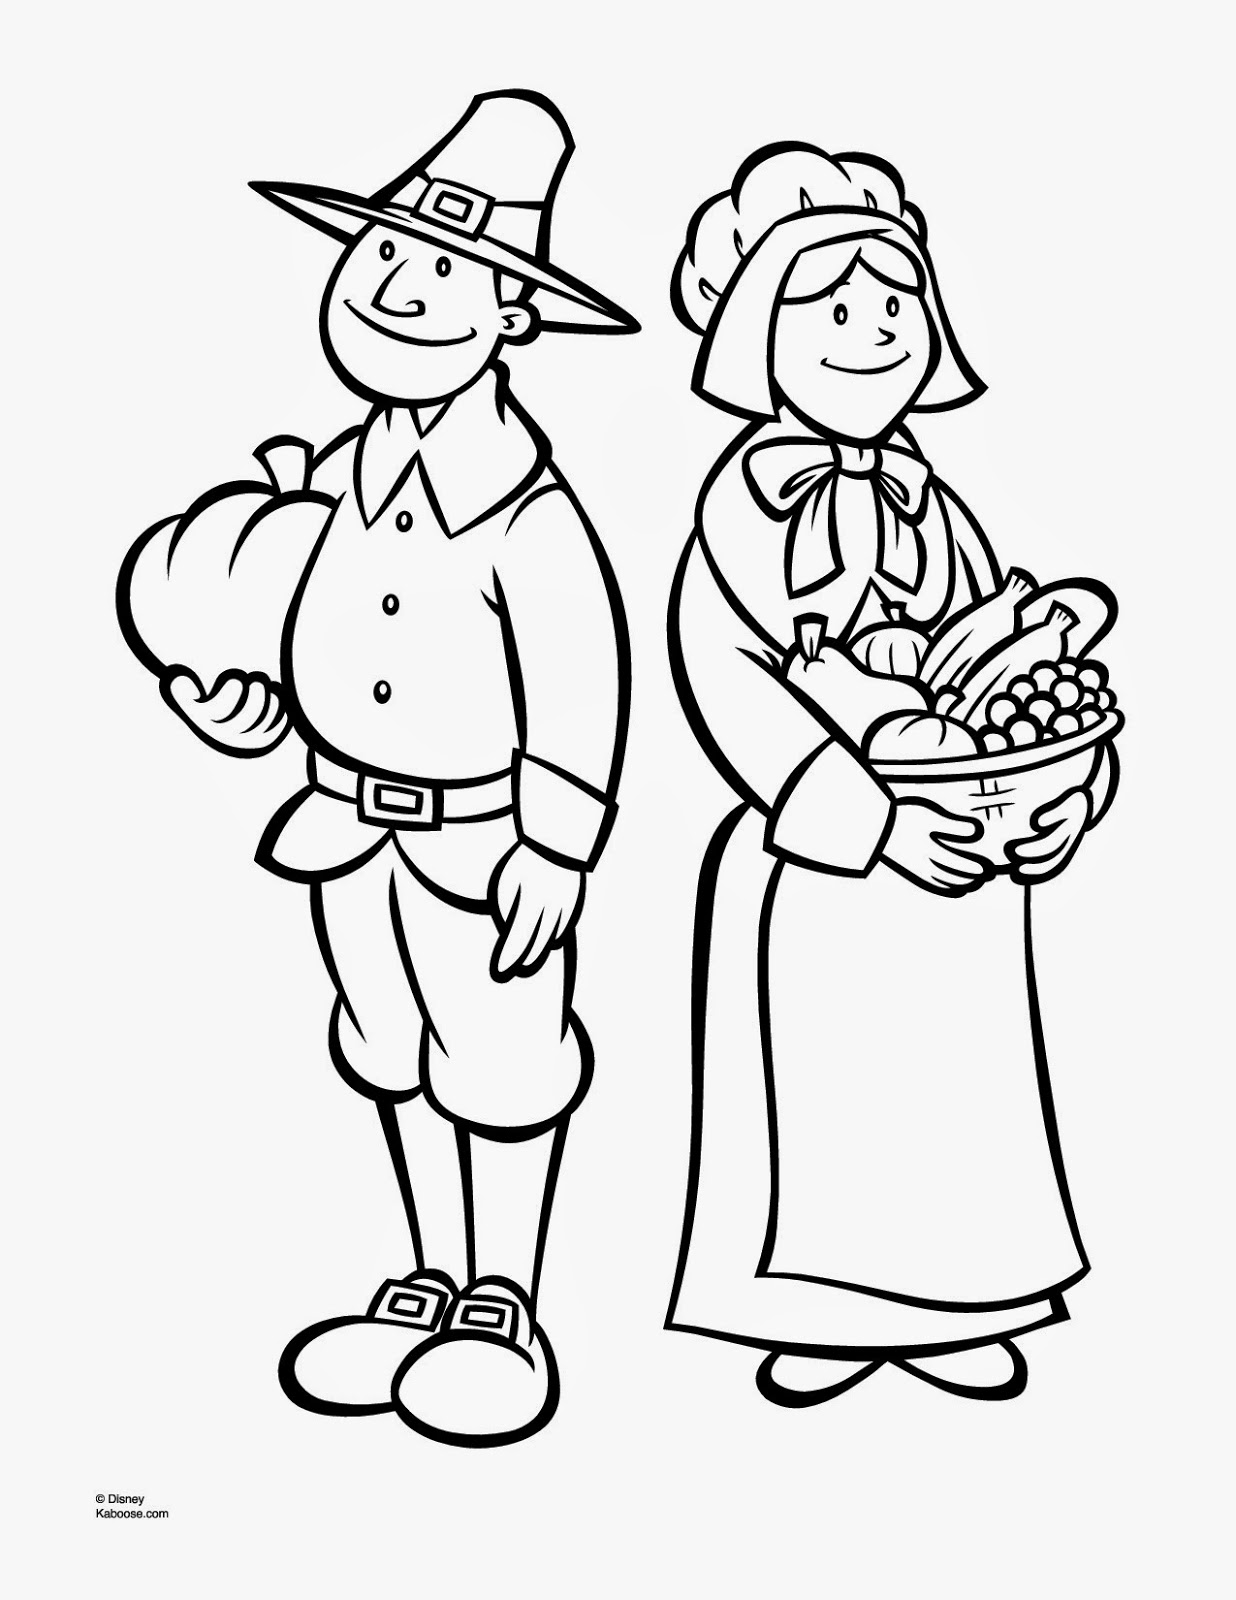 thanksgiving color page thanksgiving day printable coloring pages minnesota miranda color page thanksgiving